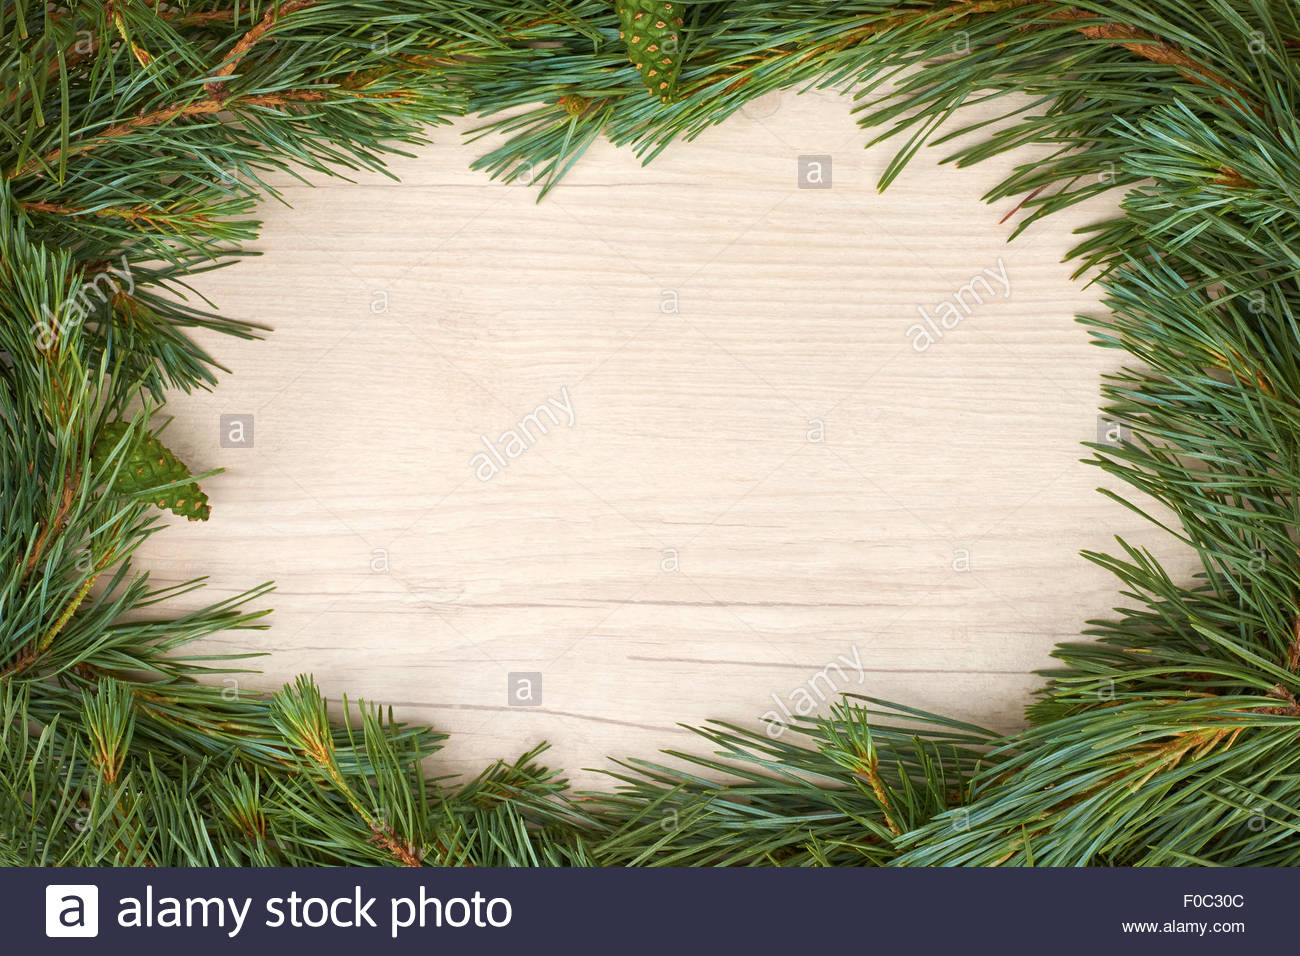 Traditional pine tree christmas border decoration on a wood stock jpg